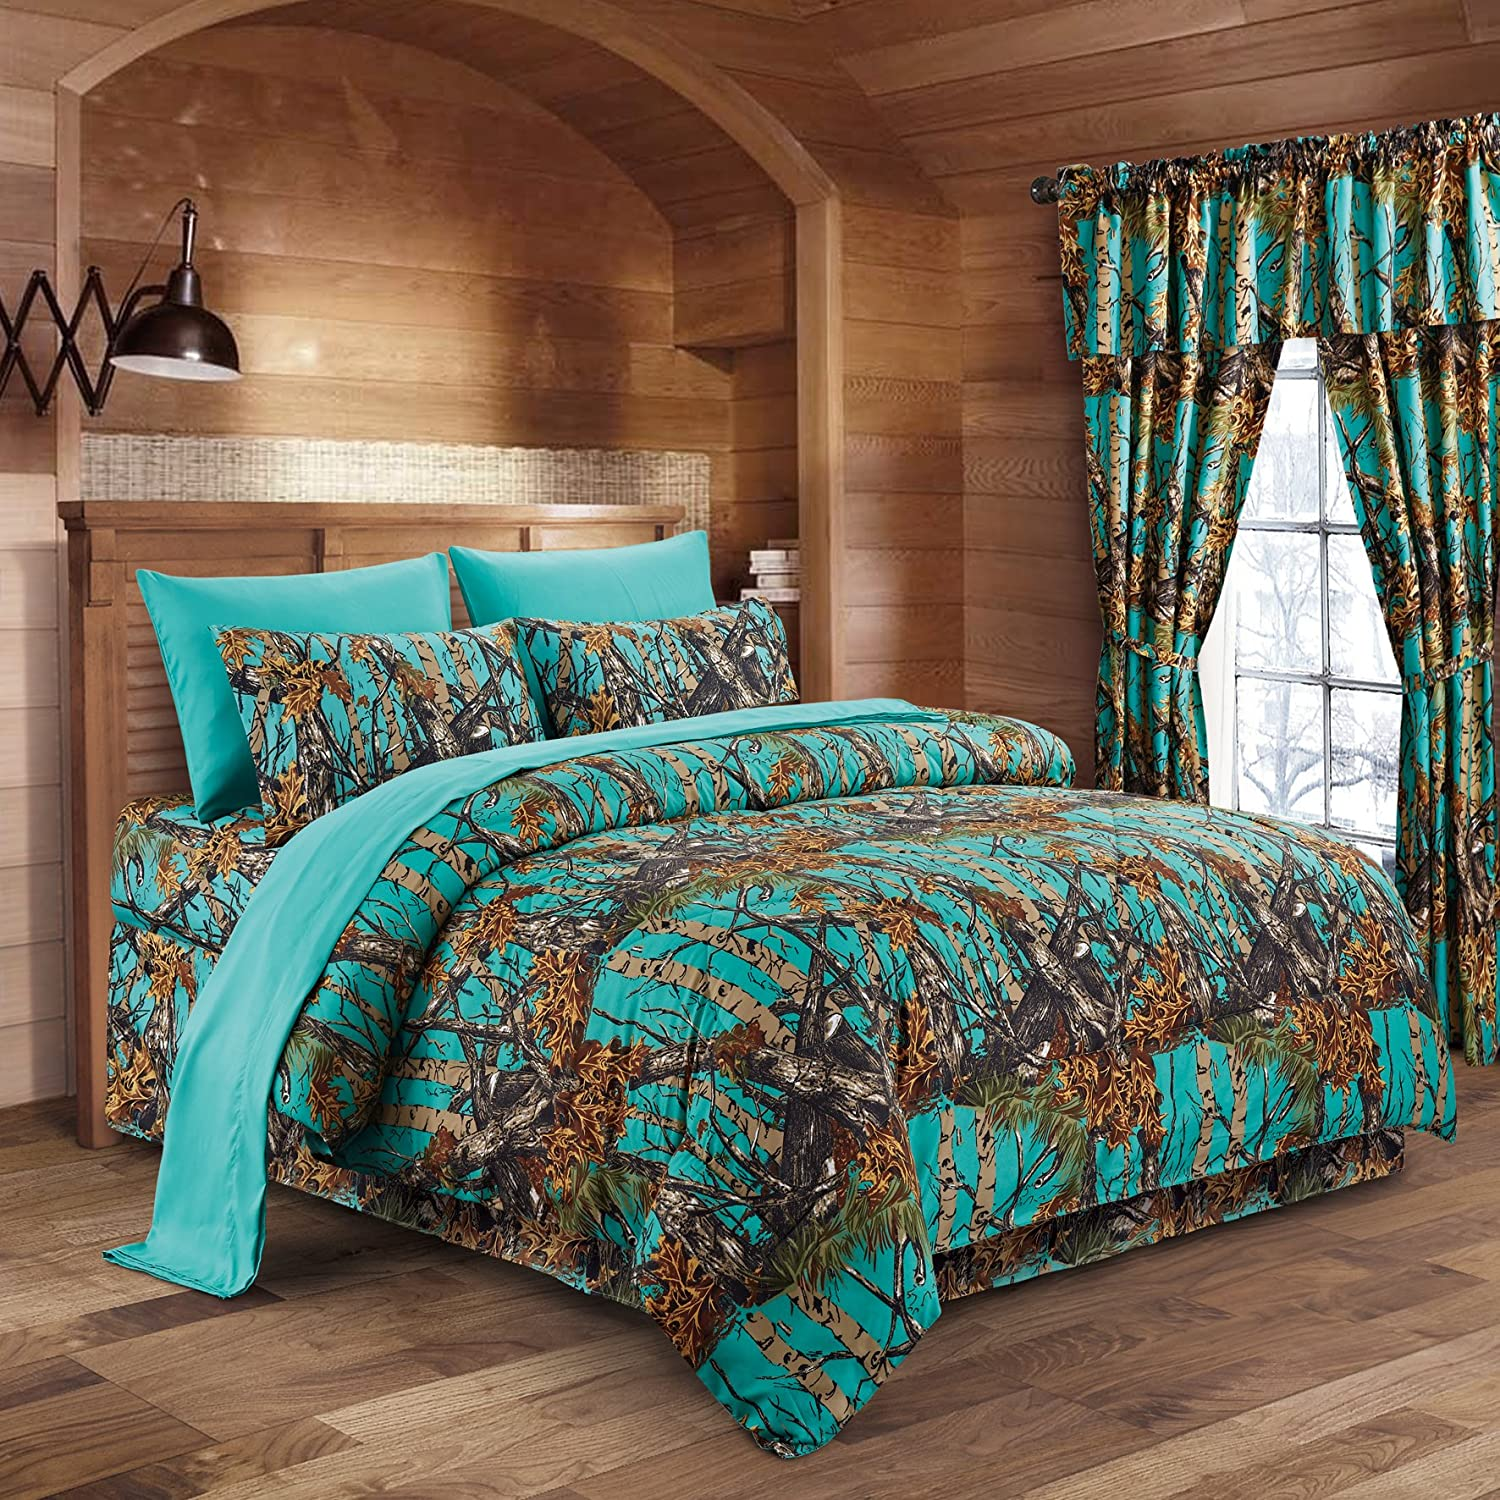 Full 8pc Premium Luxury Comforter